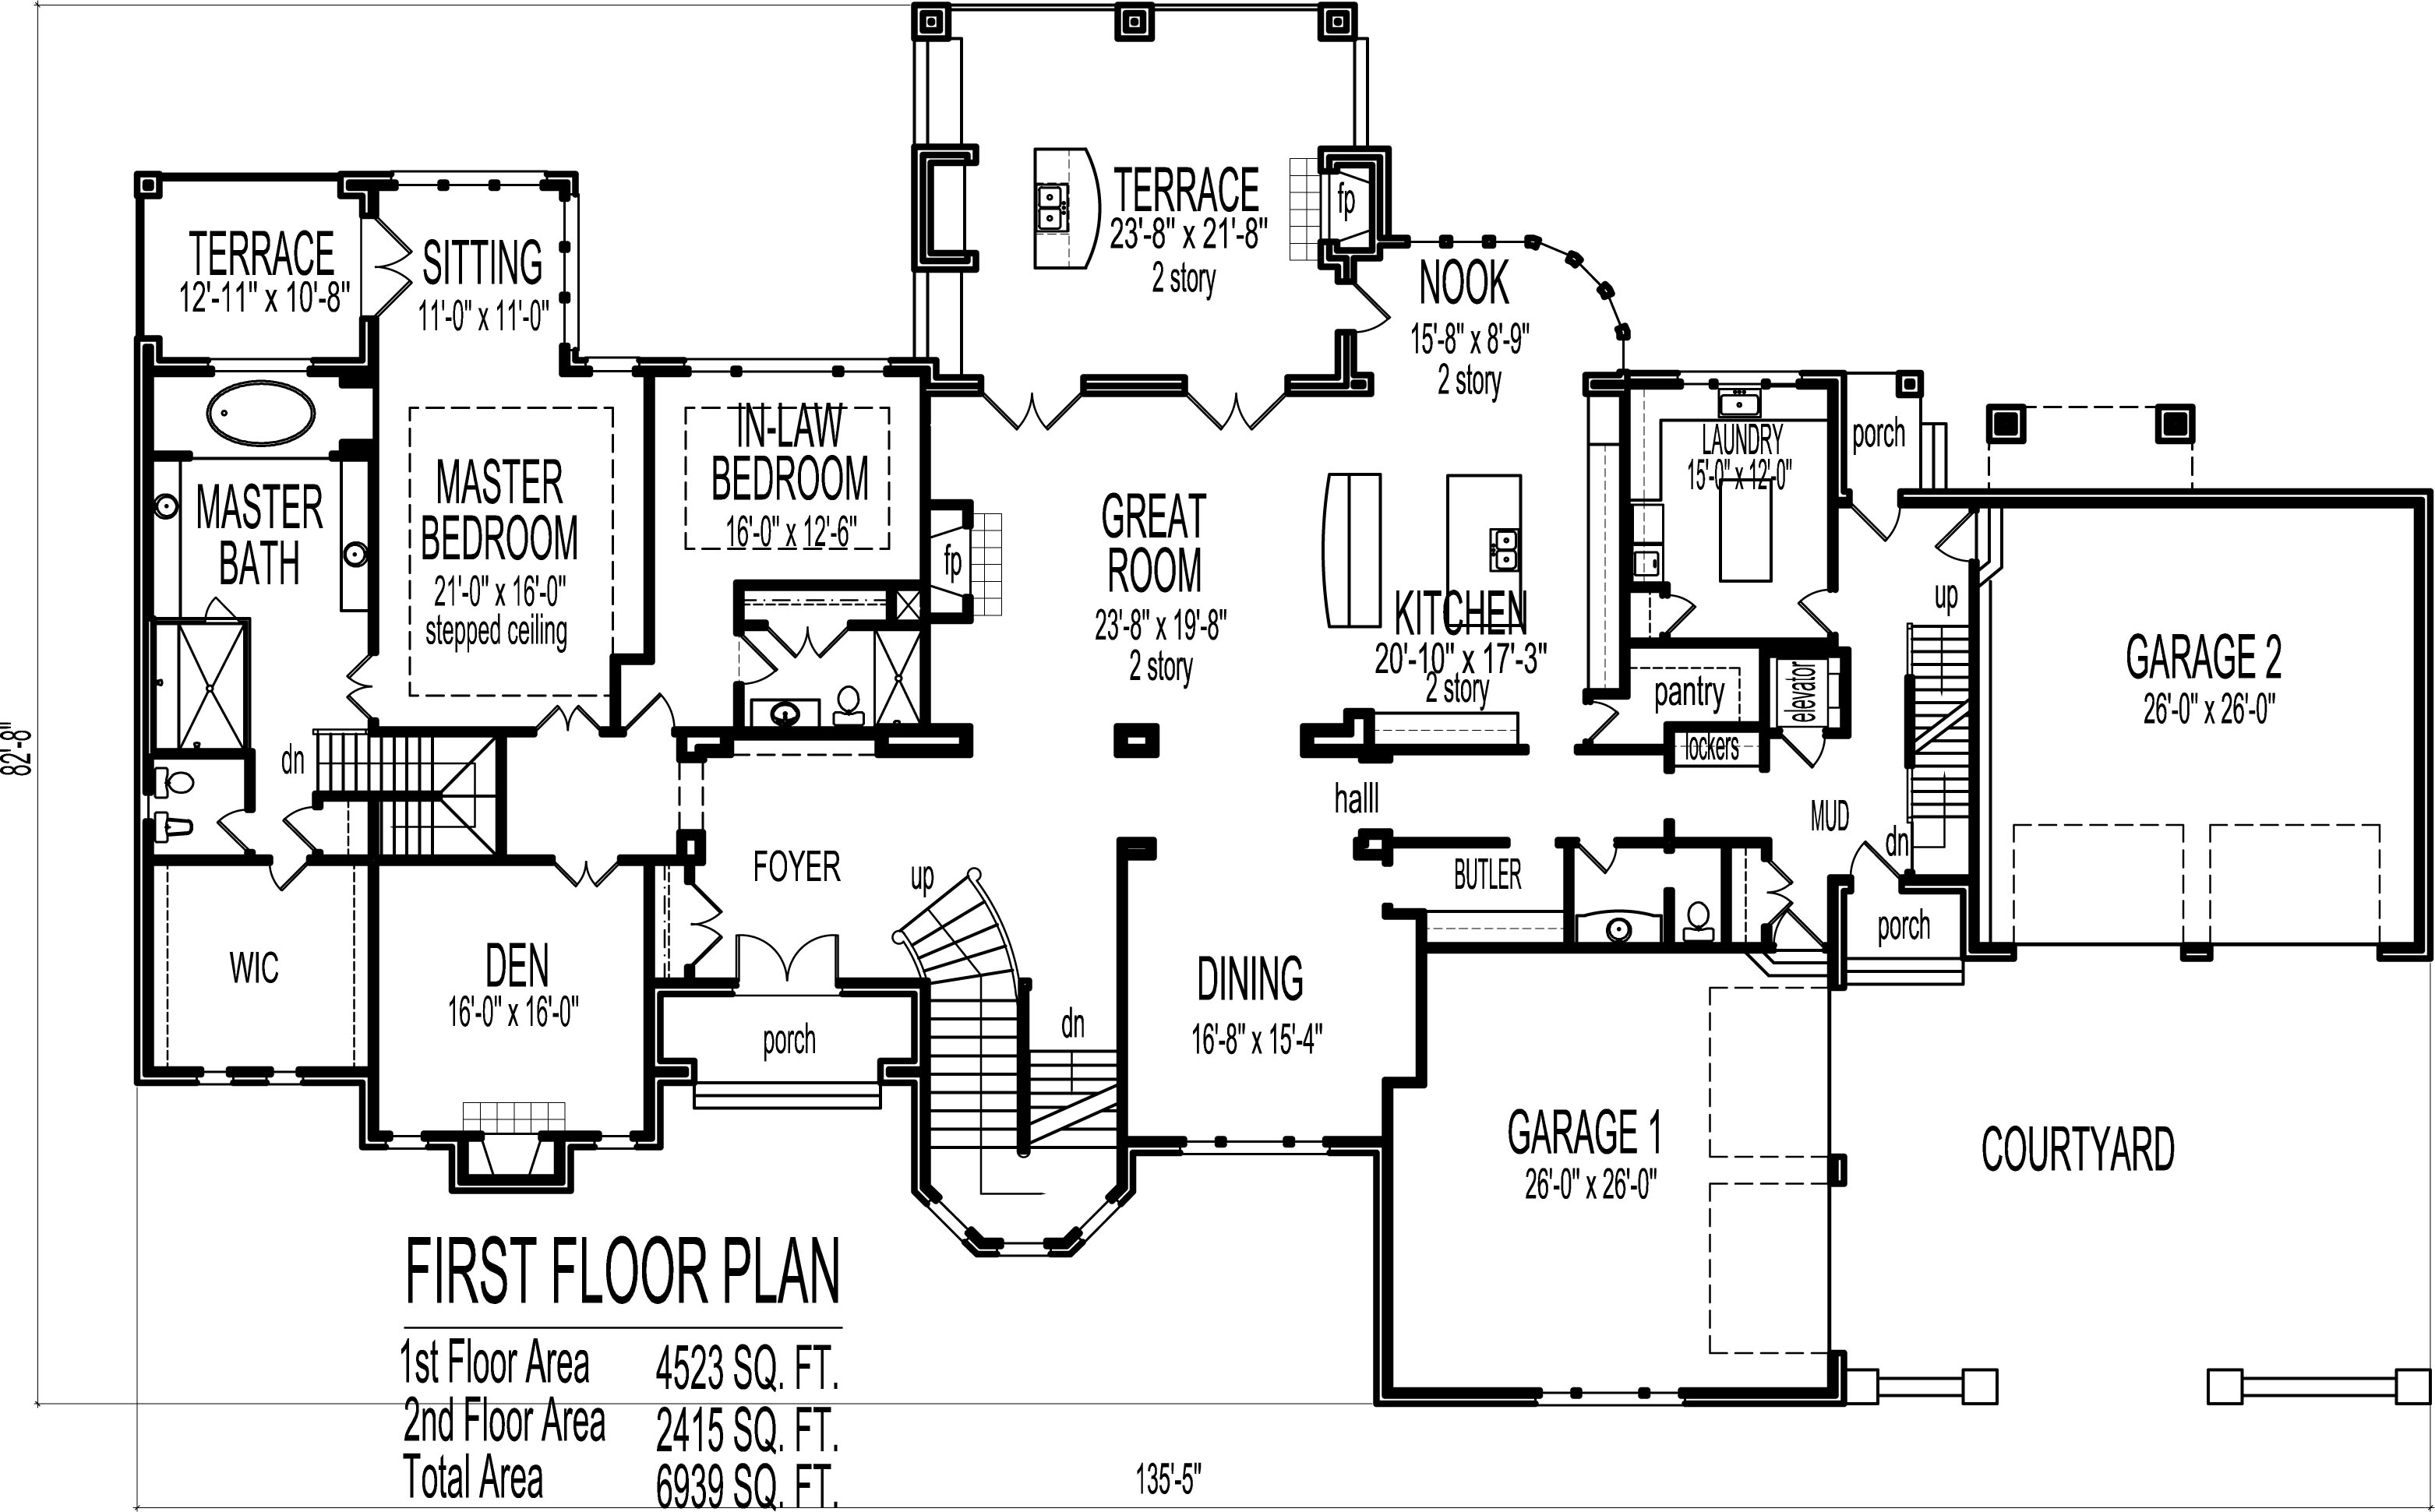 Bedroom HousePlan 2 Bedroom Main Floor 3 Bedroom 2nd Floor